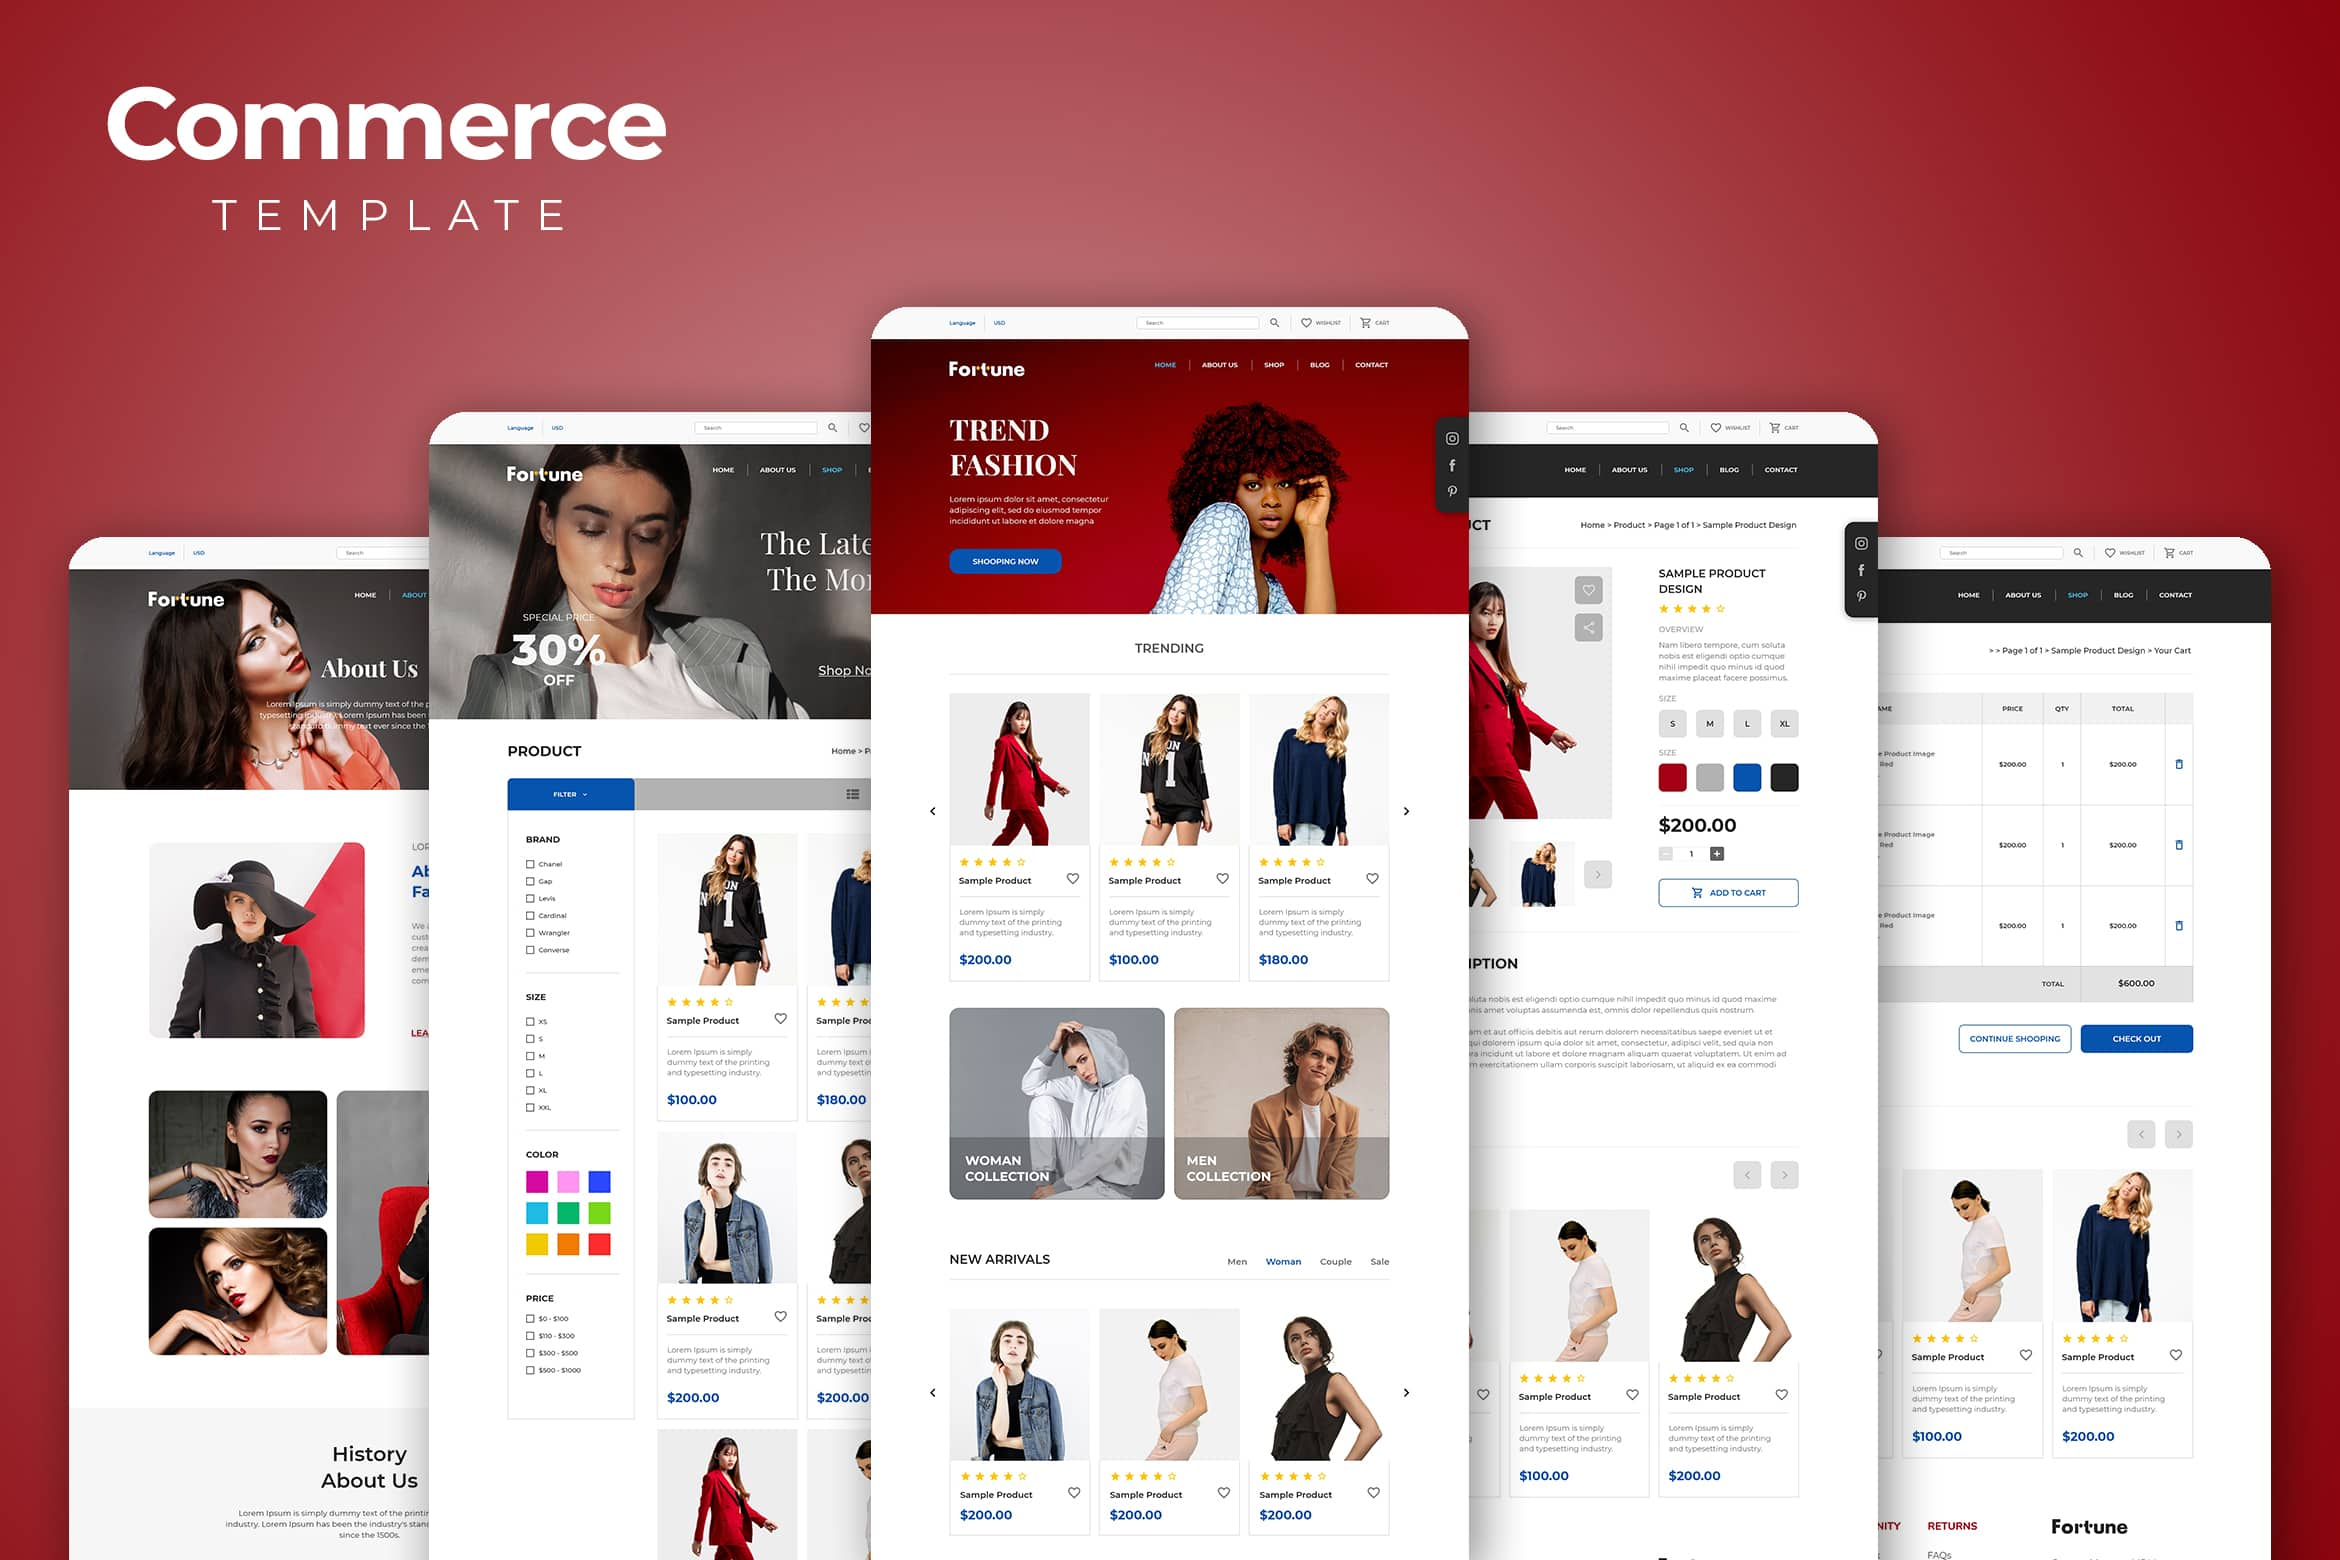 Web Commerce - Fashion Trend Template